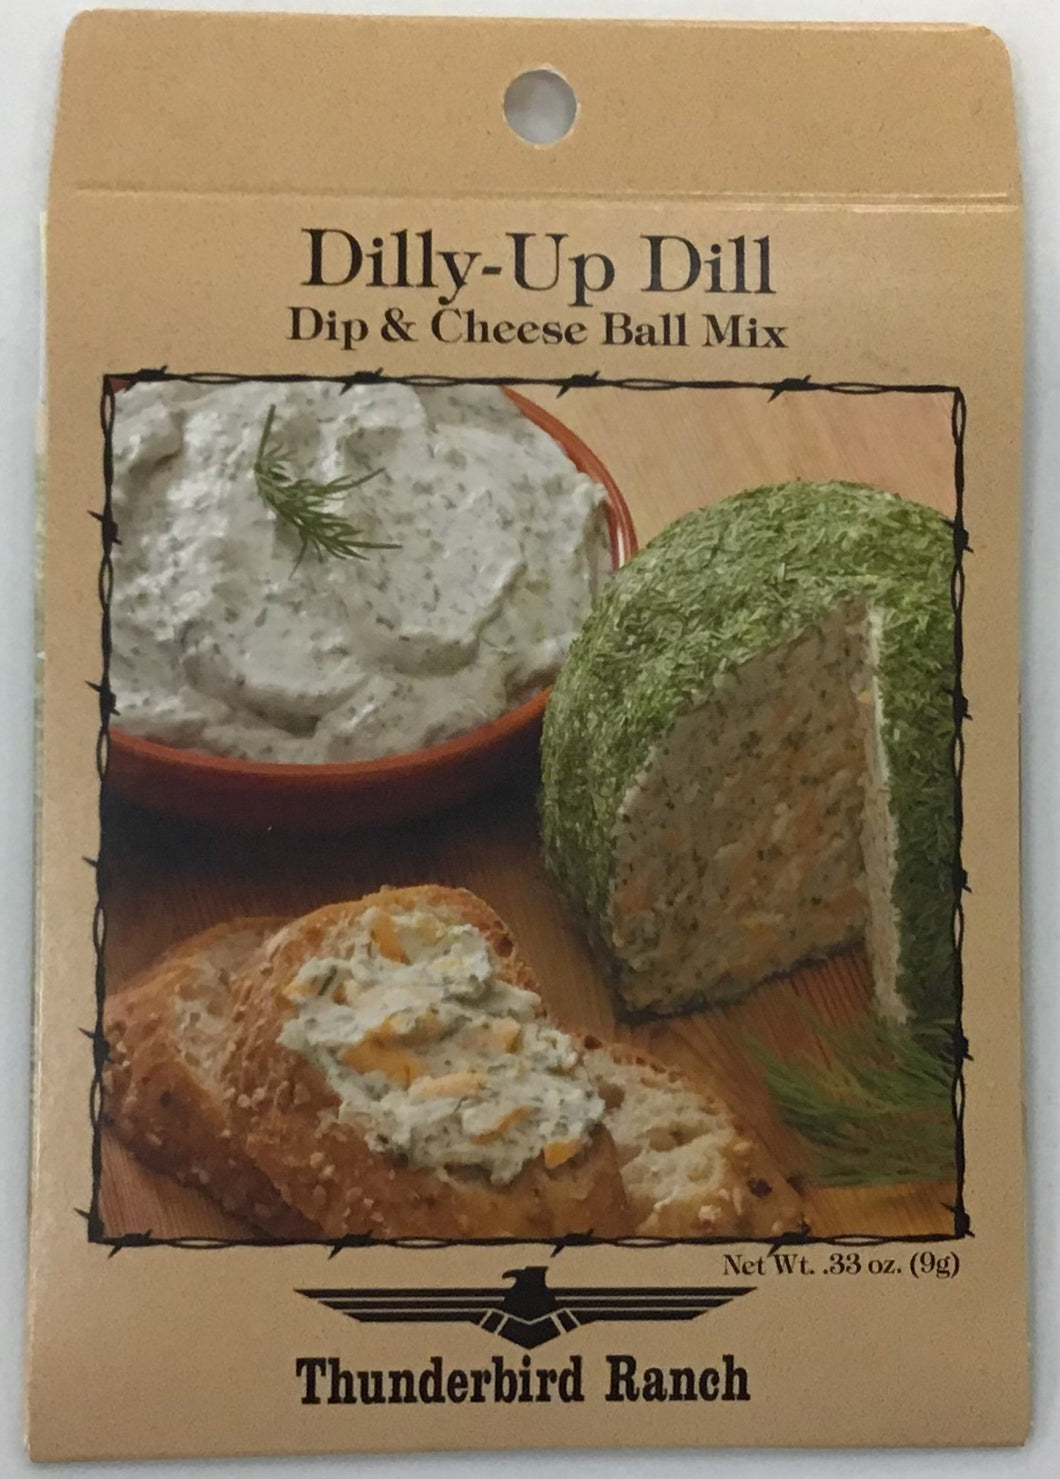 Dilly-Up Dill: Dip & Cheese Ball Mix